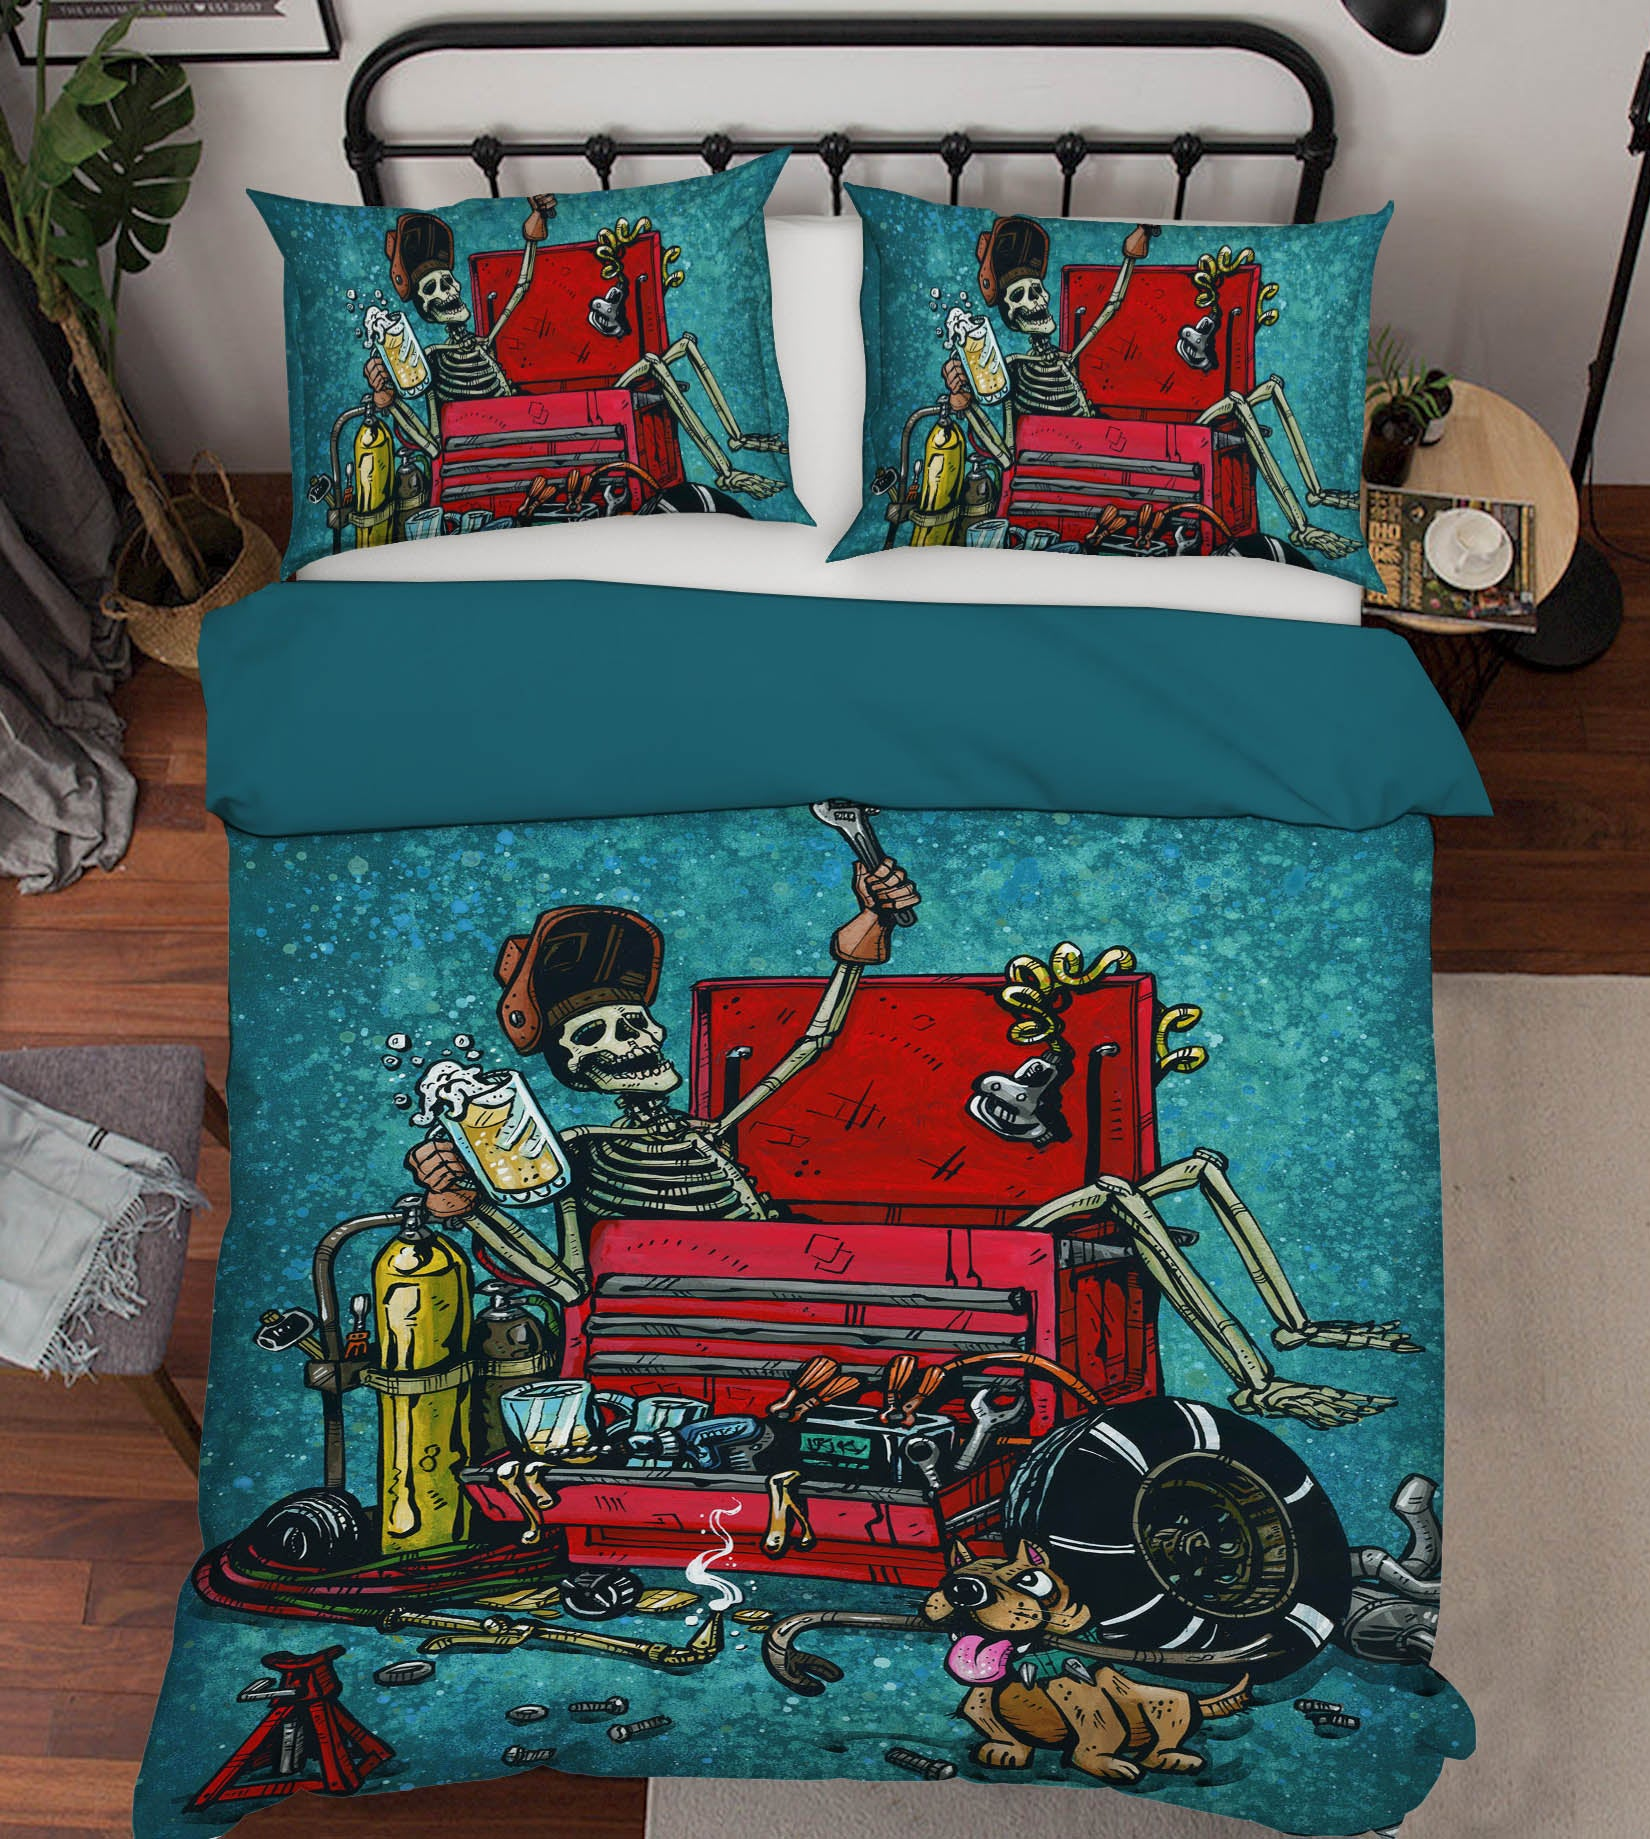 3D Skull Coffin 109 David Lozeau Bedding Bed Pillowcases Quilt